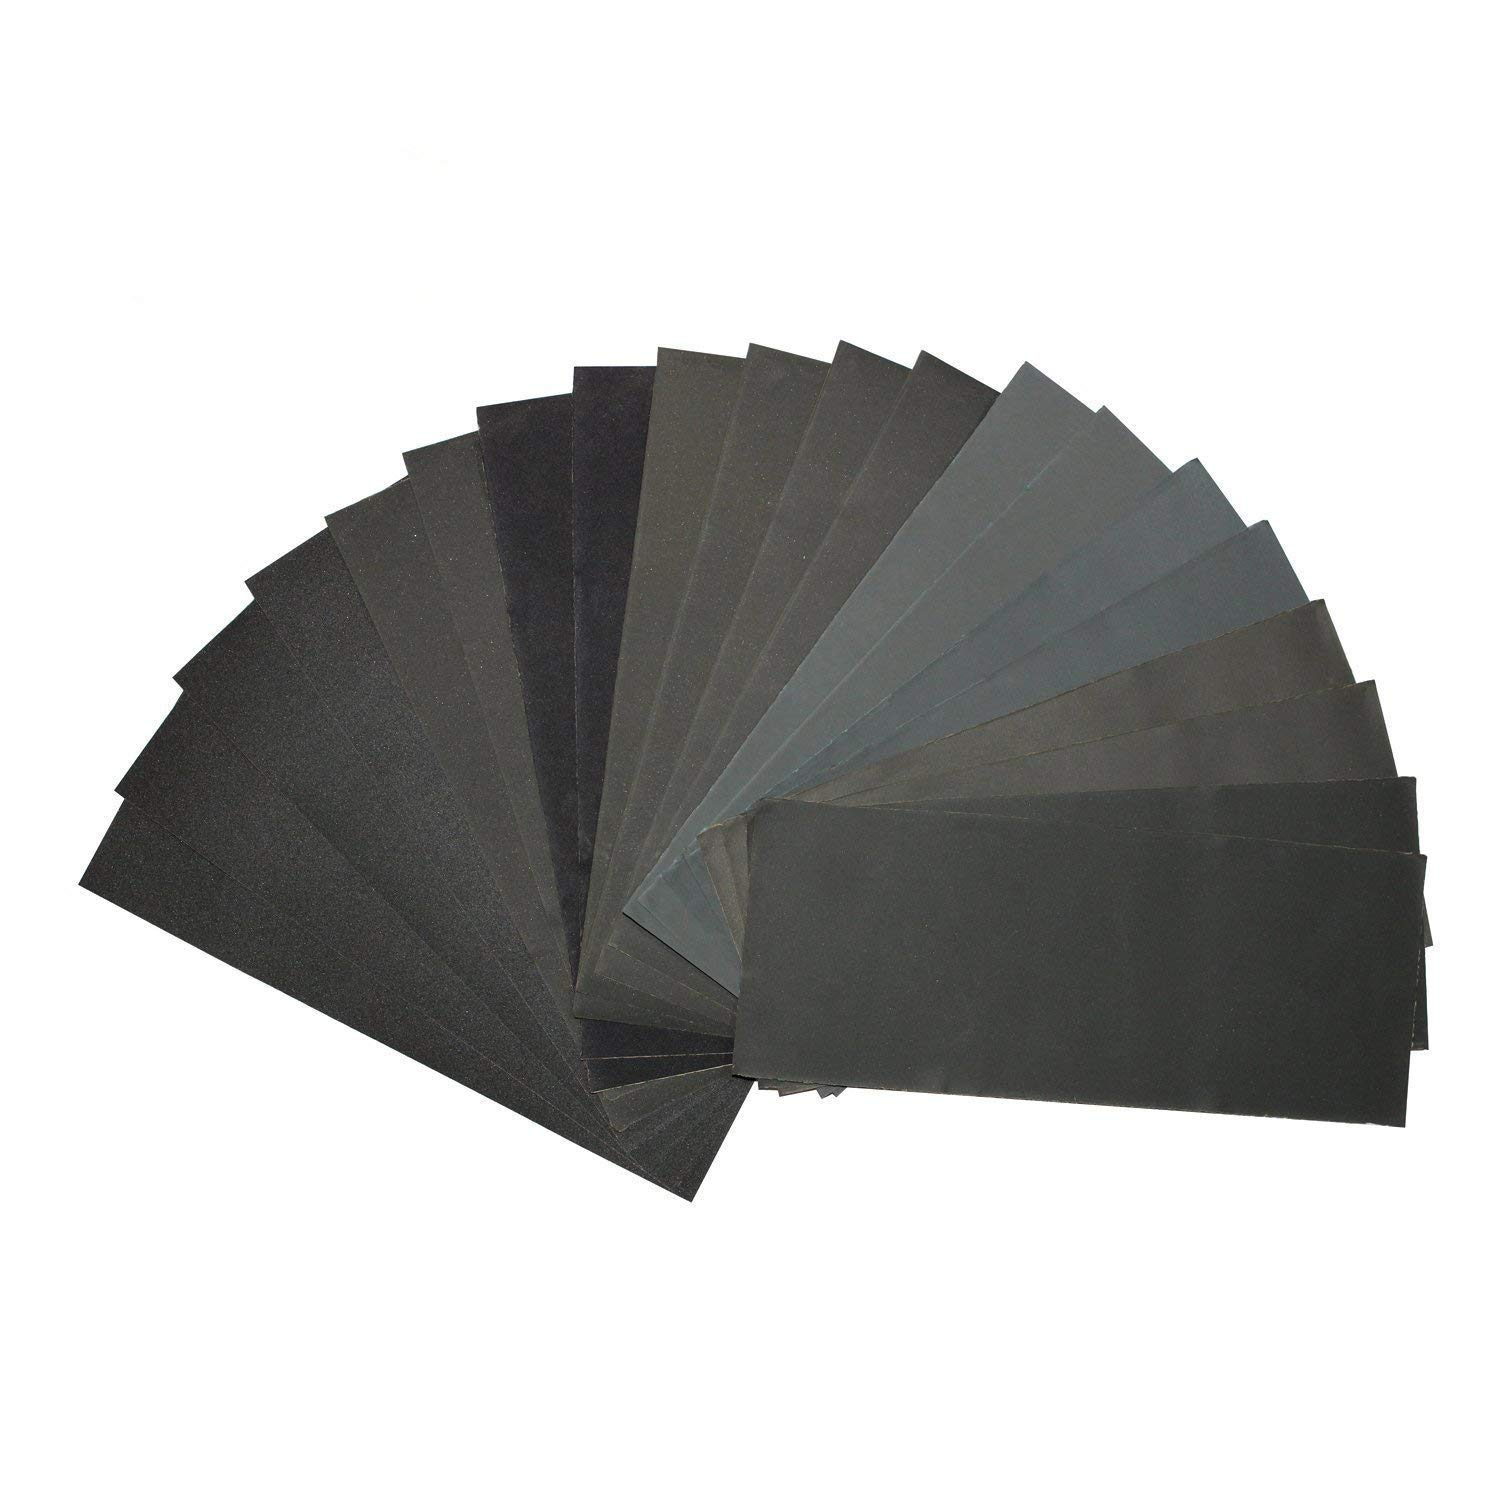 400//600//800//1000//1200//1500//2000//2500//3000 Grit Wood Furniture Finishing Wood Turning Finishing Wet//Dry Sandpaper Assortment for Automotive Sanding 20 Pieces 9 x 3.6 Inch